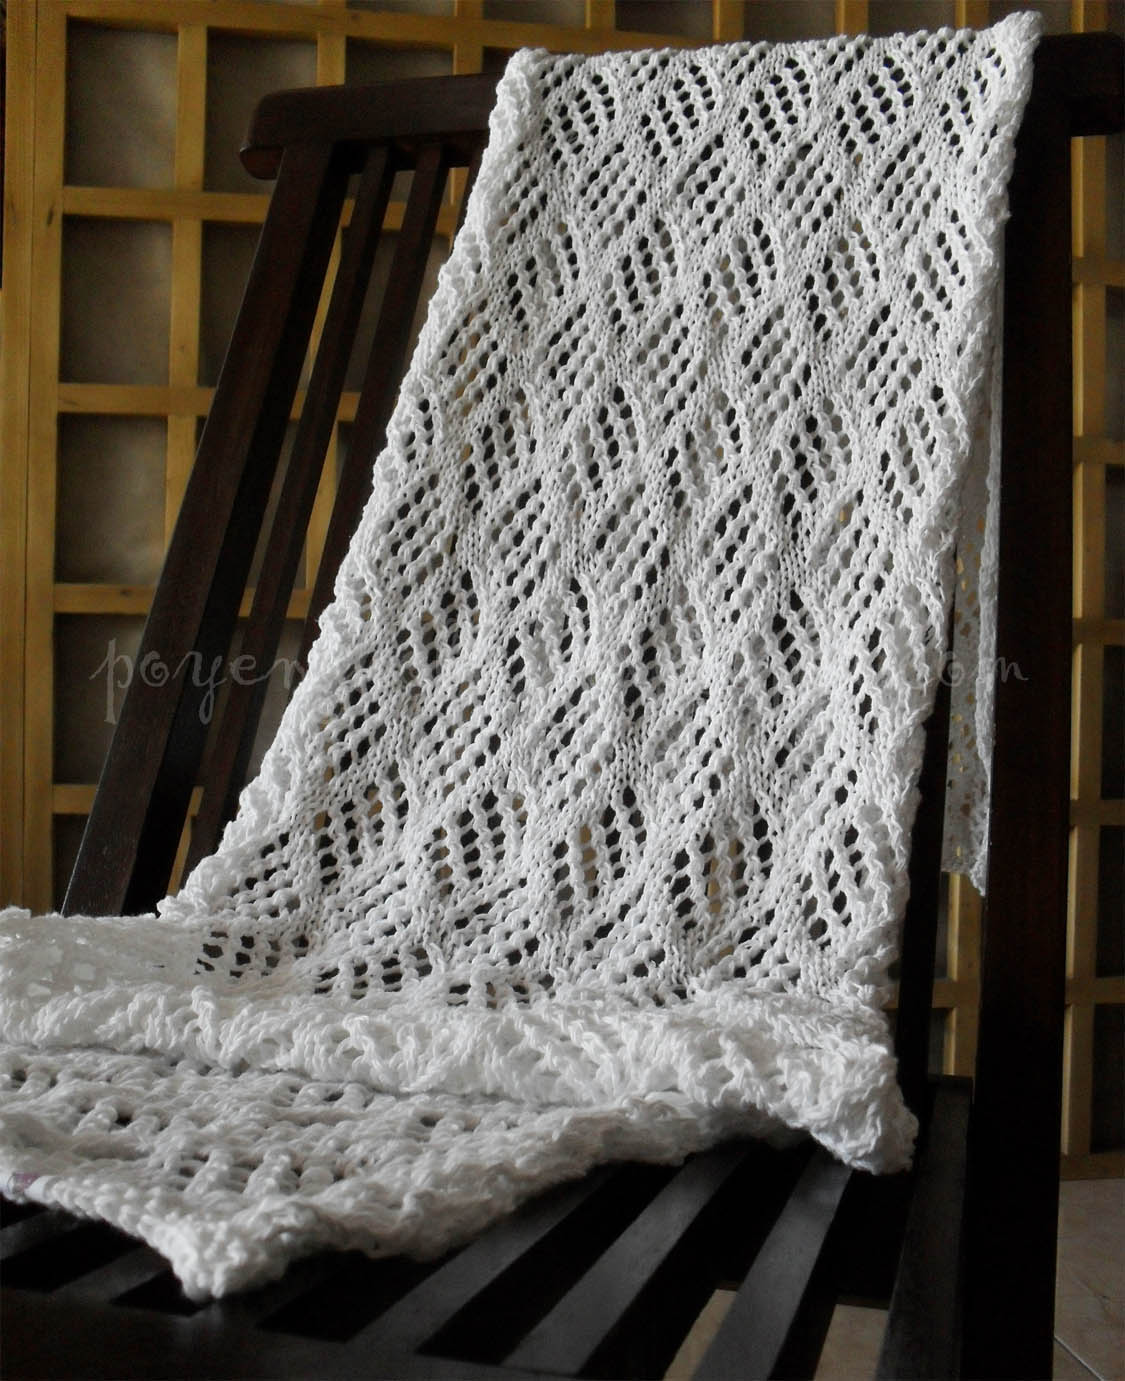 Lace Knitting Patterns Free : Ajeng Belajar Merajut: Rajut Free Knitting Pattern : Interlude Lace Wrap